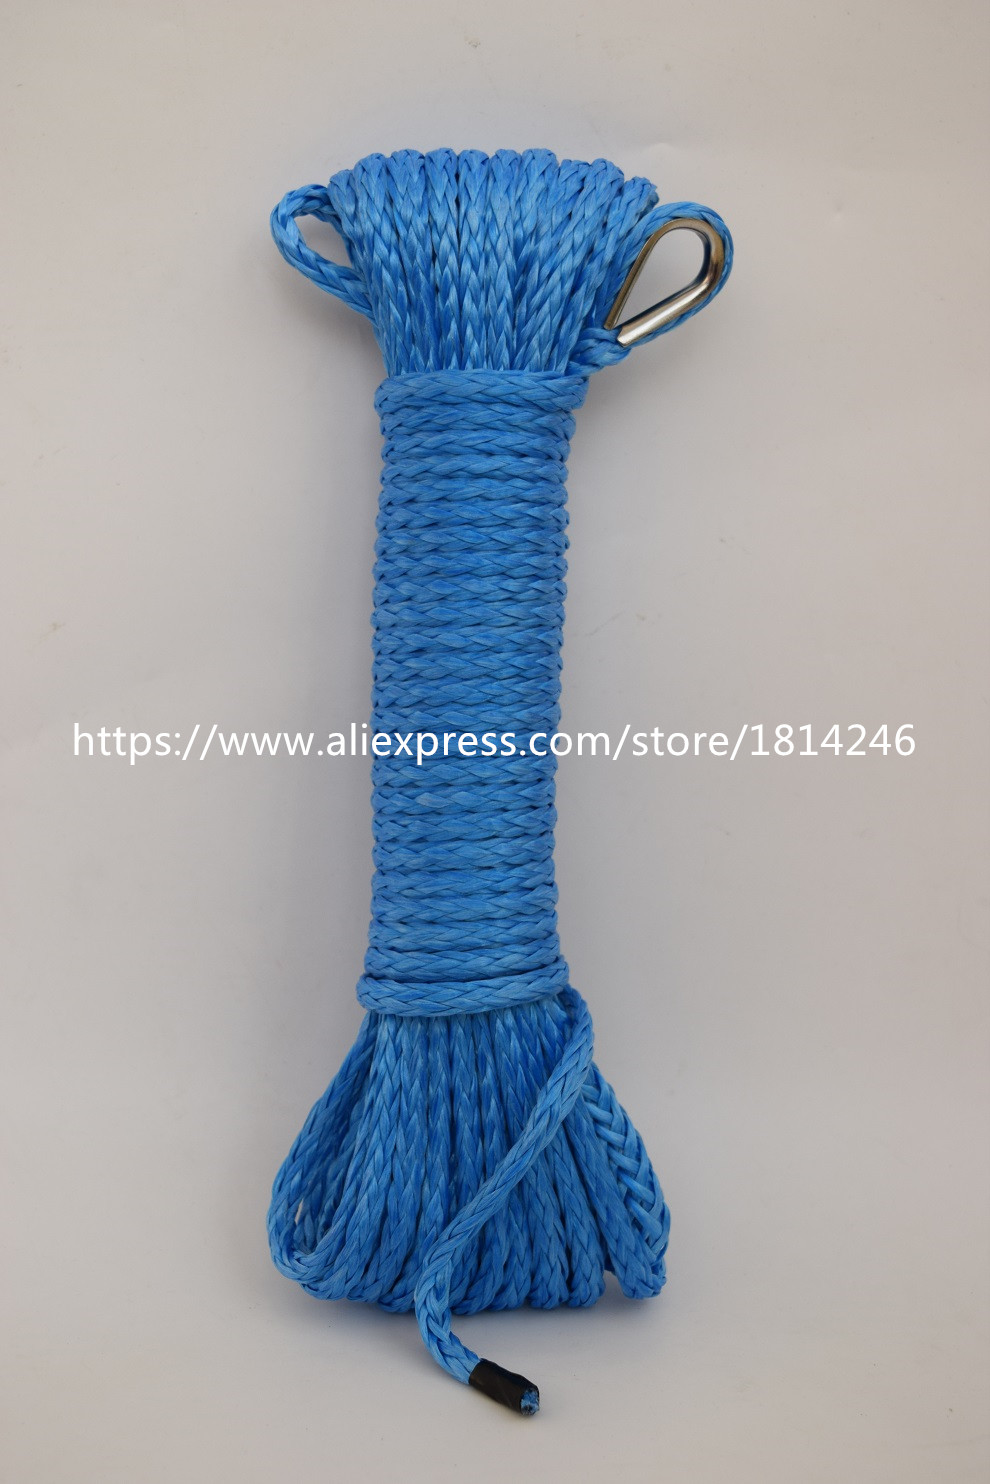 Blue 4mm*15m ATV Winch Line,Synthetic Winch Rope,Durable UHMWPE Rope For ATV UTV Vehicle Car Motorcycle